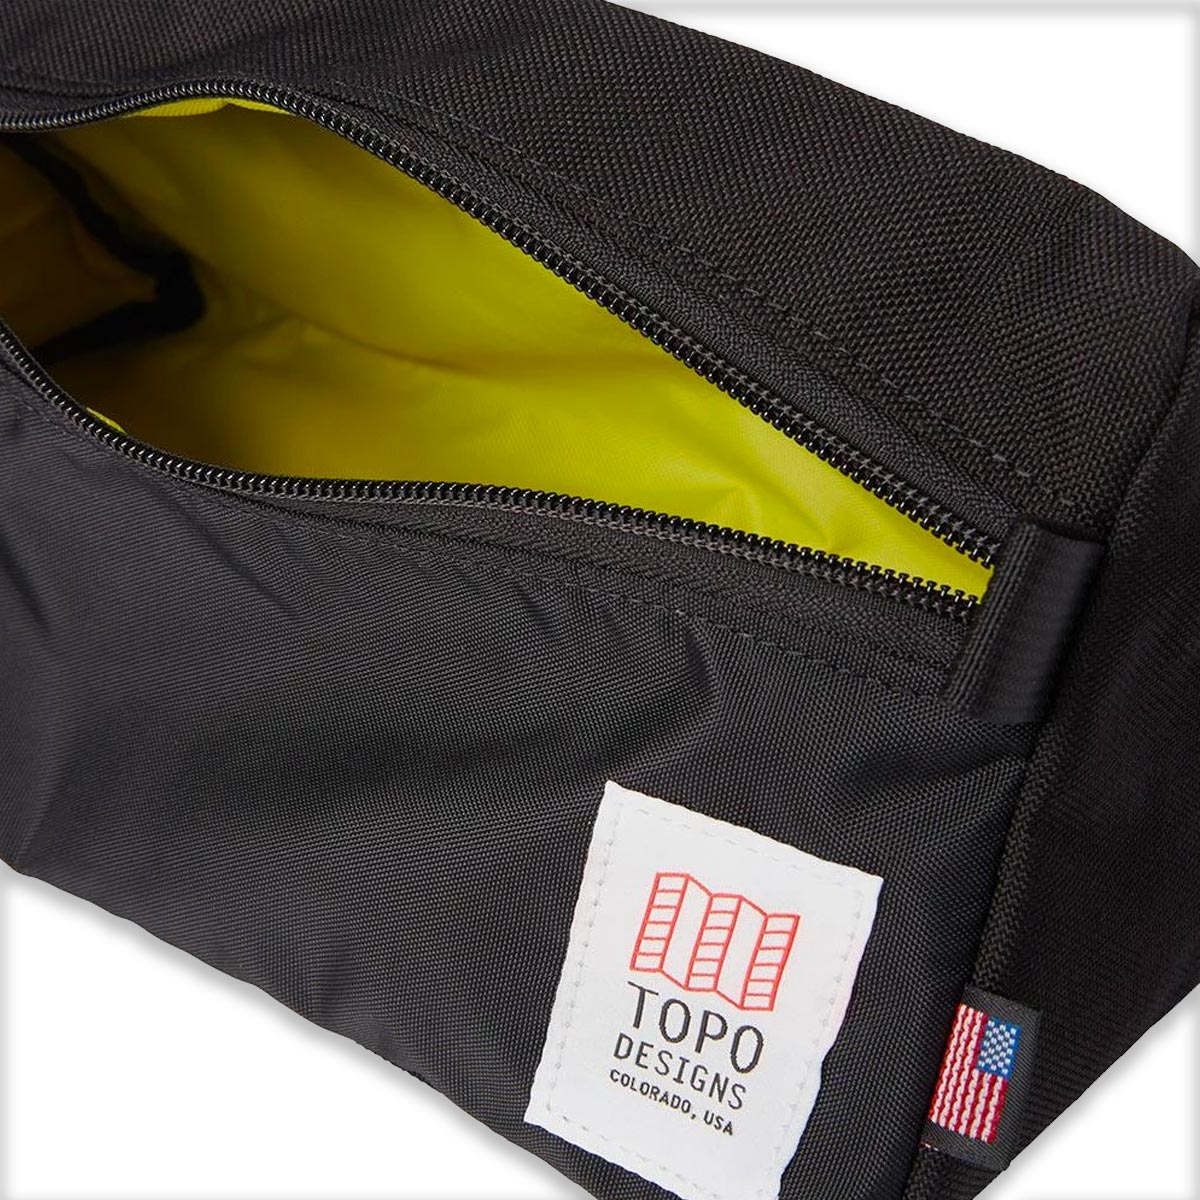 Topo Designs Dopp Kit Black, water-resistant, travel light, accessory bag